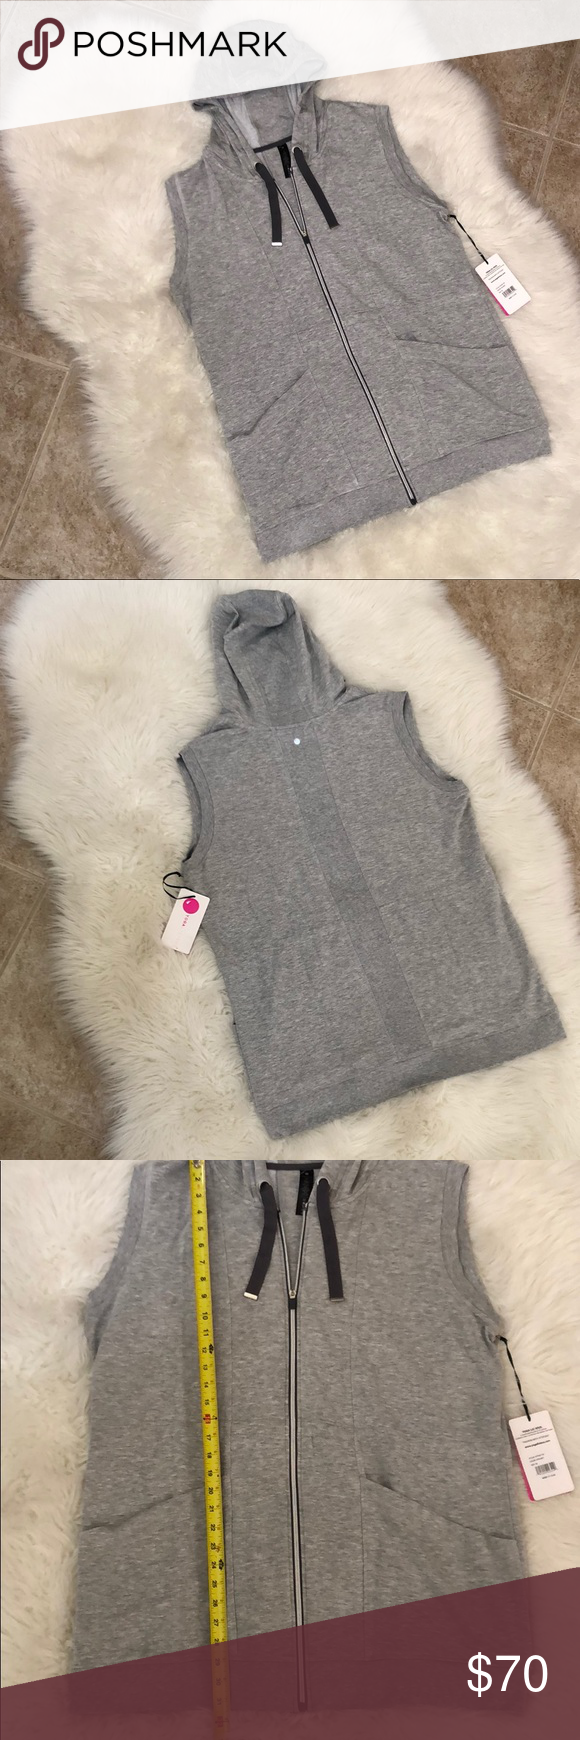 de908f2f1a508 Yogalicious Sleeveless Tunic Zip Hoodie 1X NWT! Yogalicious Sleeveless  Tunic Zip Hoodie 1X NWT! Heather Grey. Super comfy!!! Yogalicious Tops